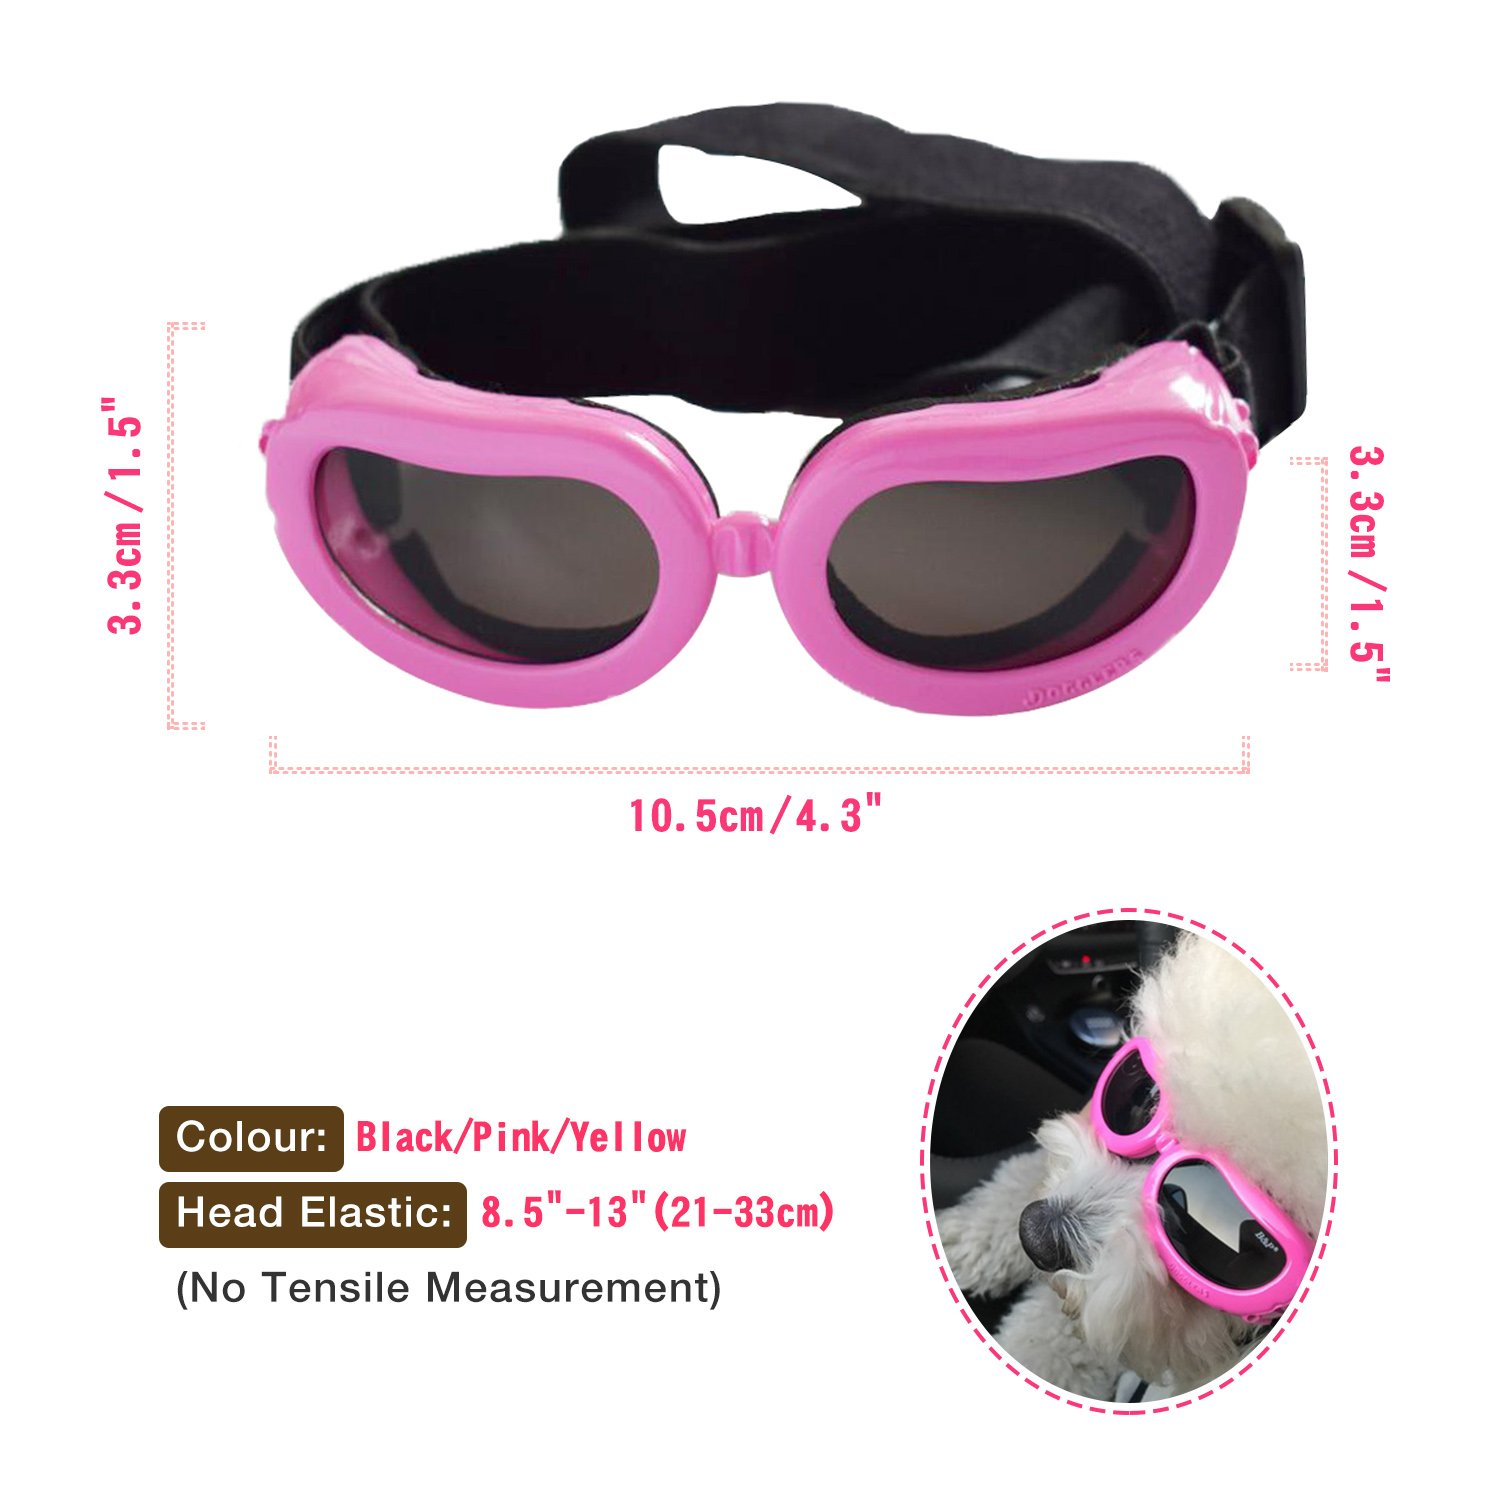 Kailian /® Cute and Stylish Goggles Waterproof Anti-ultraviolet Sunglasses For Cats or Small Dogs-Pink